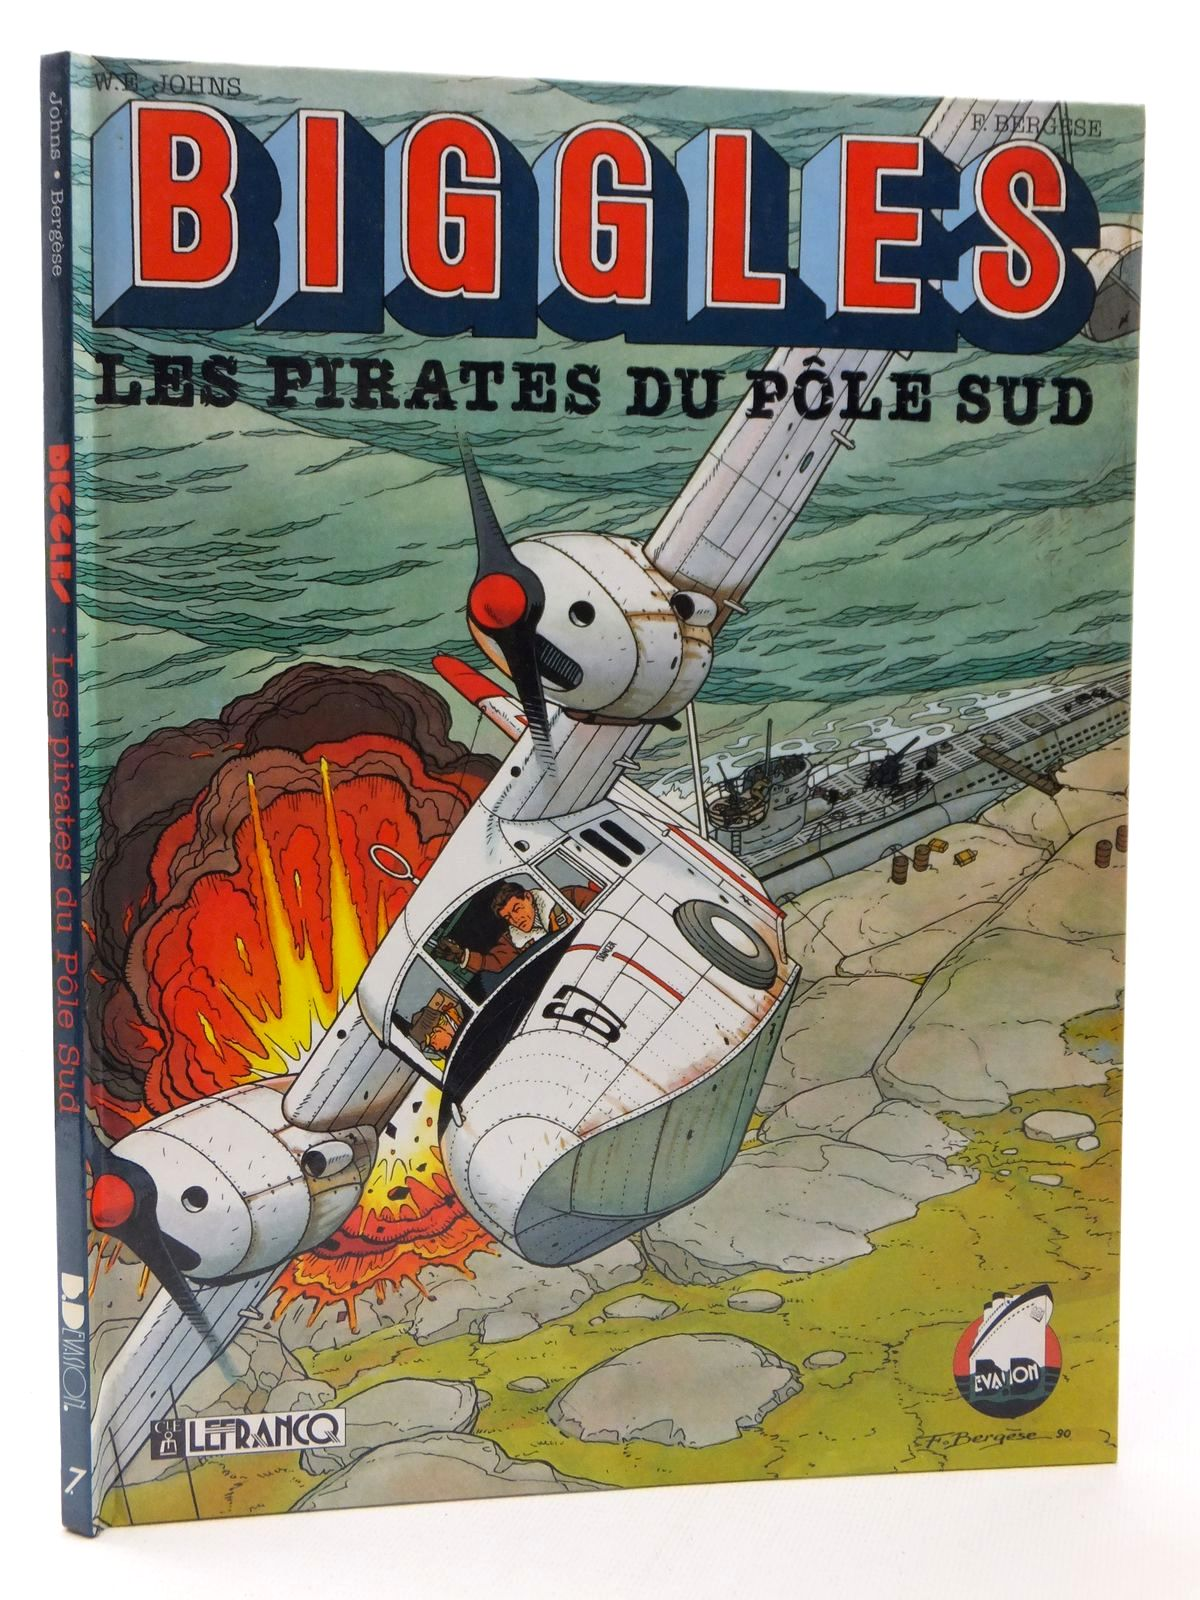 Photo of BIGGLES LES PIRATES DU POLE SUD written by Johns, W.E. illustrated by Bergese, Francis published by Claude Lefrancq Editeur (STOCK CODE: 2123163)  for sale by Stella & Rose's Books